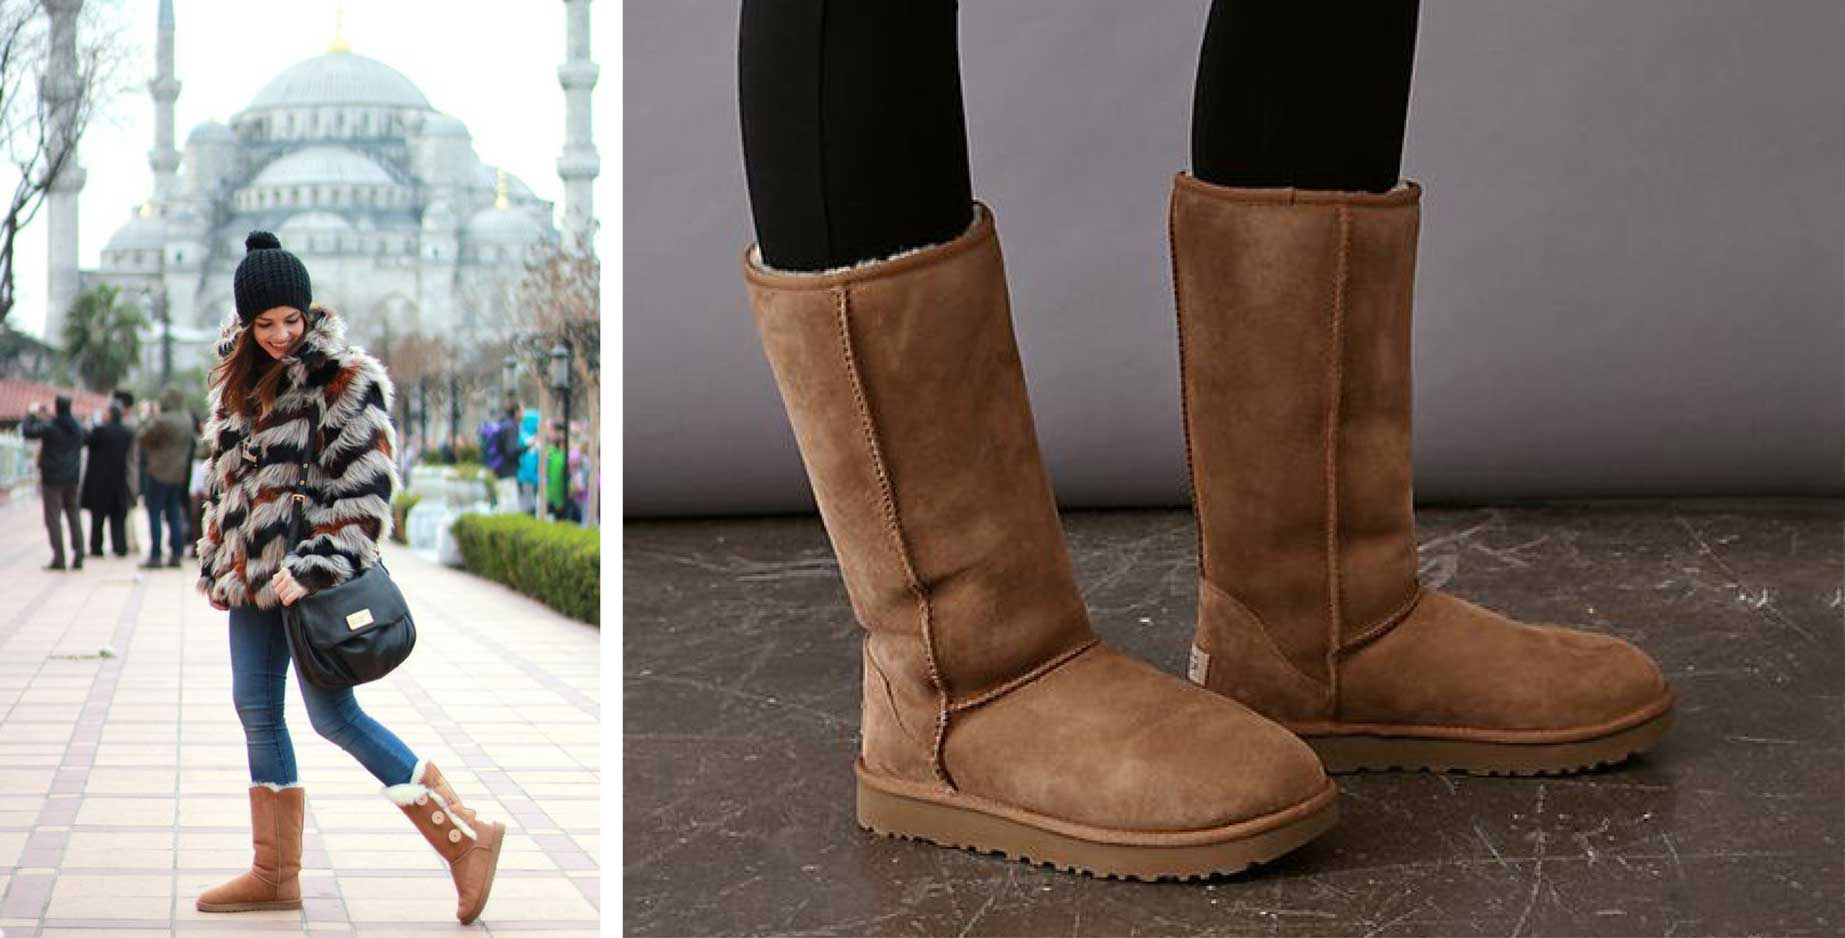 Uggs - 2000s women shoes